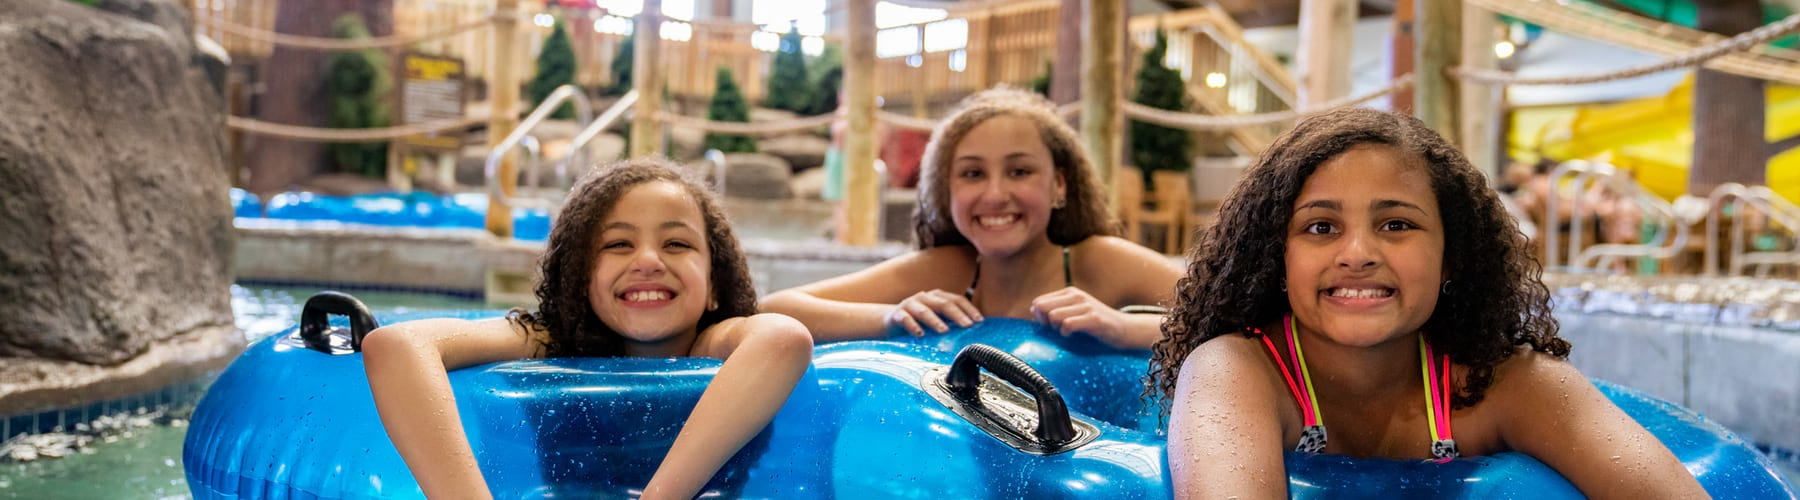 Girls in Lazy River at Timber Ridge Waterpark